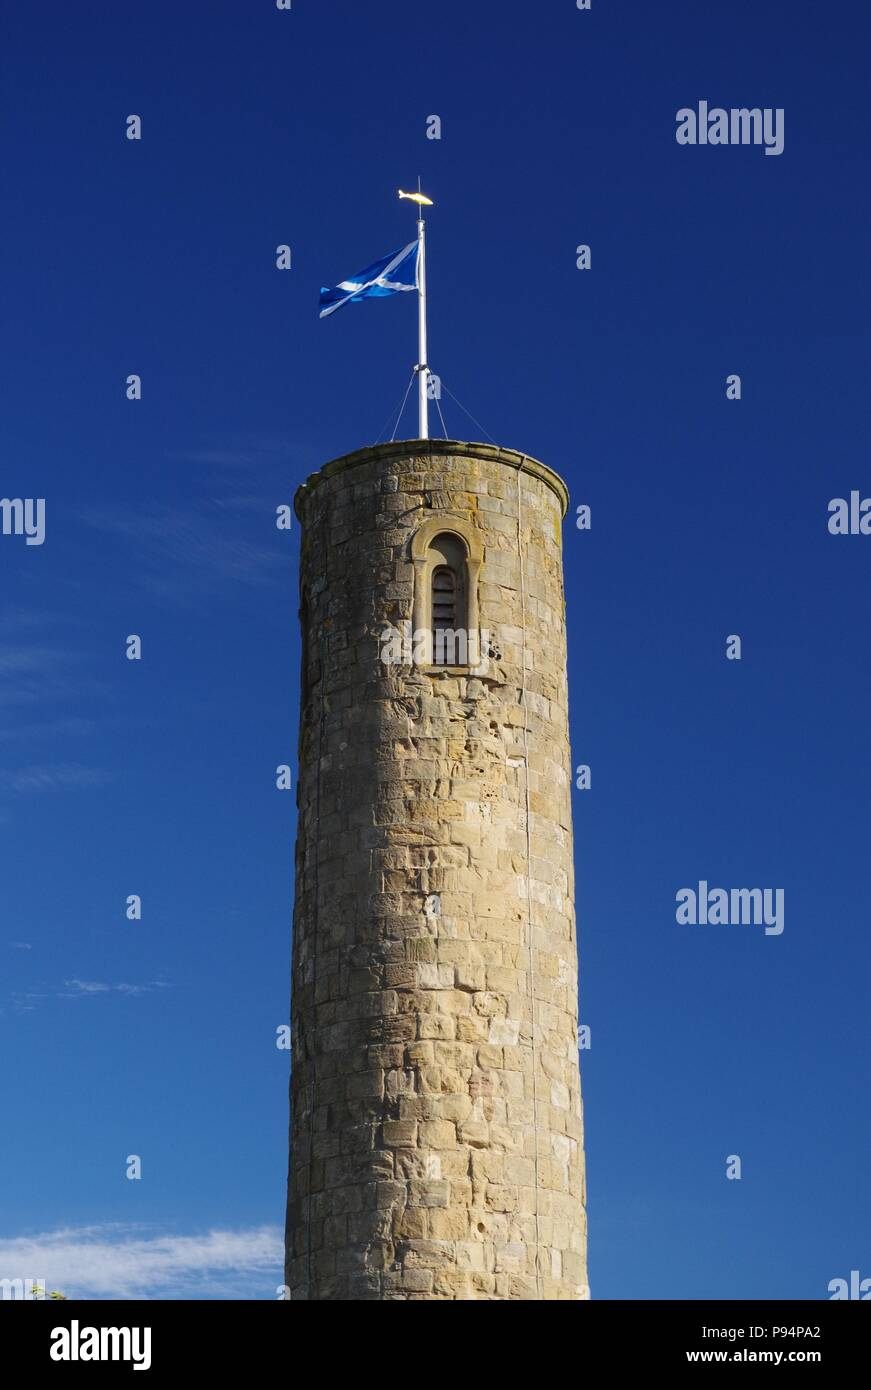 Abernethy 11th Century Round Tower St Andrews Saltire Flag against a Blue Summer Sky. Perth, Scotland, UK. July, 2018. - Stock Image